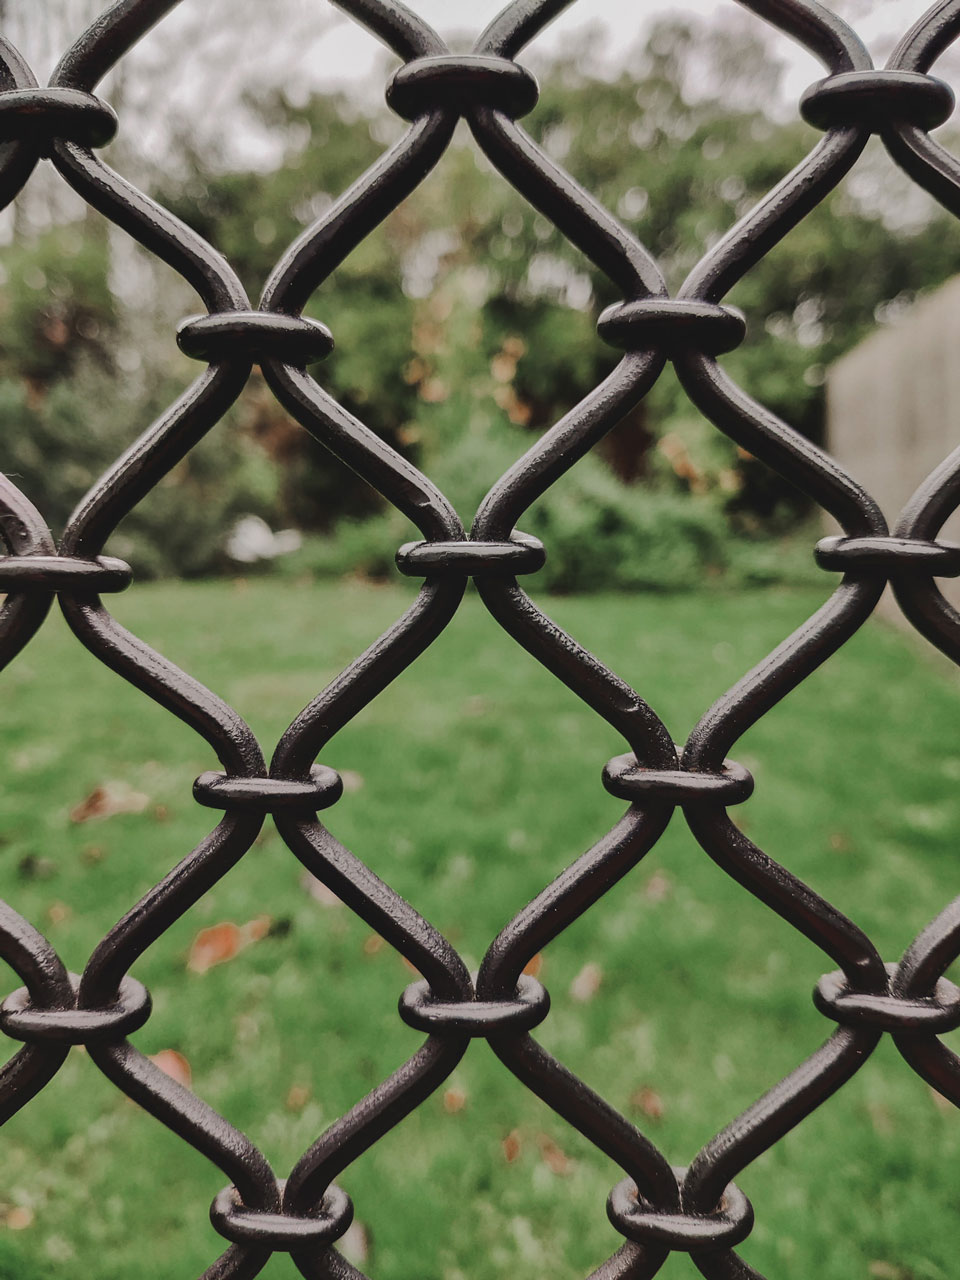 Photo showing focus on a wire fence